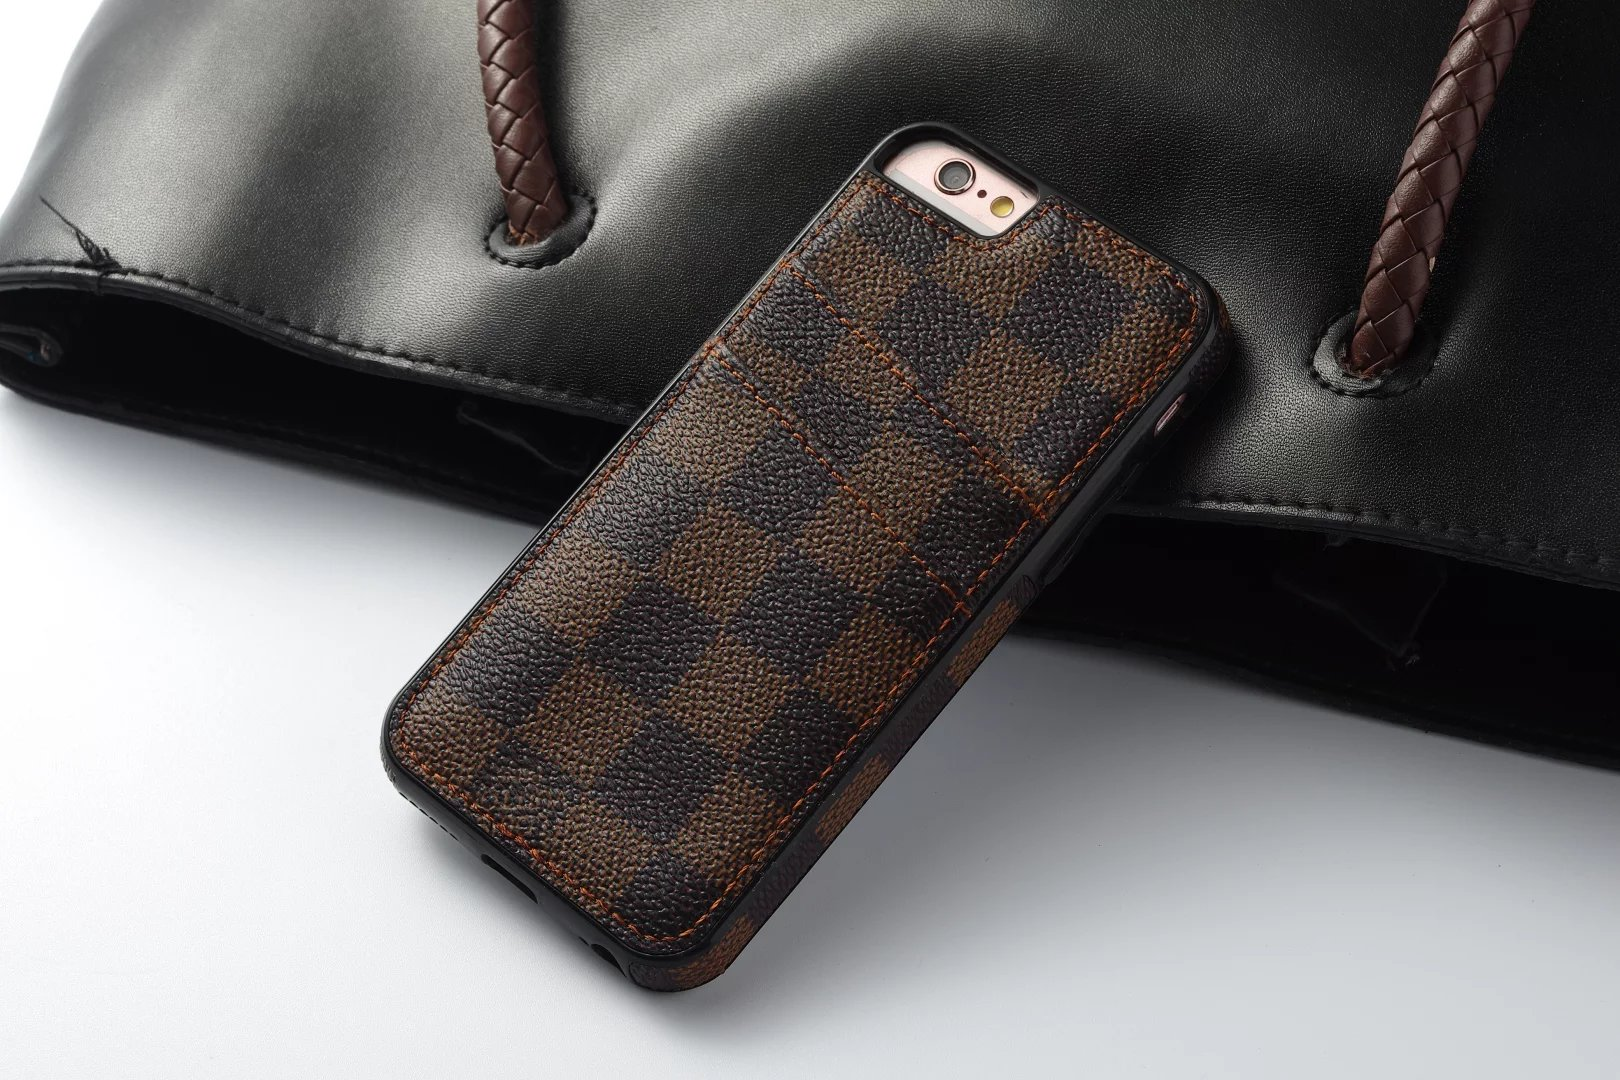 iphone hülle holz iphone handyhülle Louis Vuitton iphone7 Plus hülle 7lbst design handyhülle smartphone hüllen test handyhülle mit foto iphone 7 Plus iphone 7 Plus hutzhülle mit akku iphone 7 Plus outdoor ca7 ipfon 6